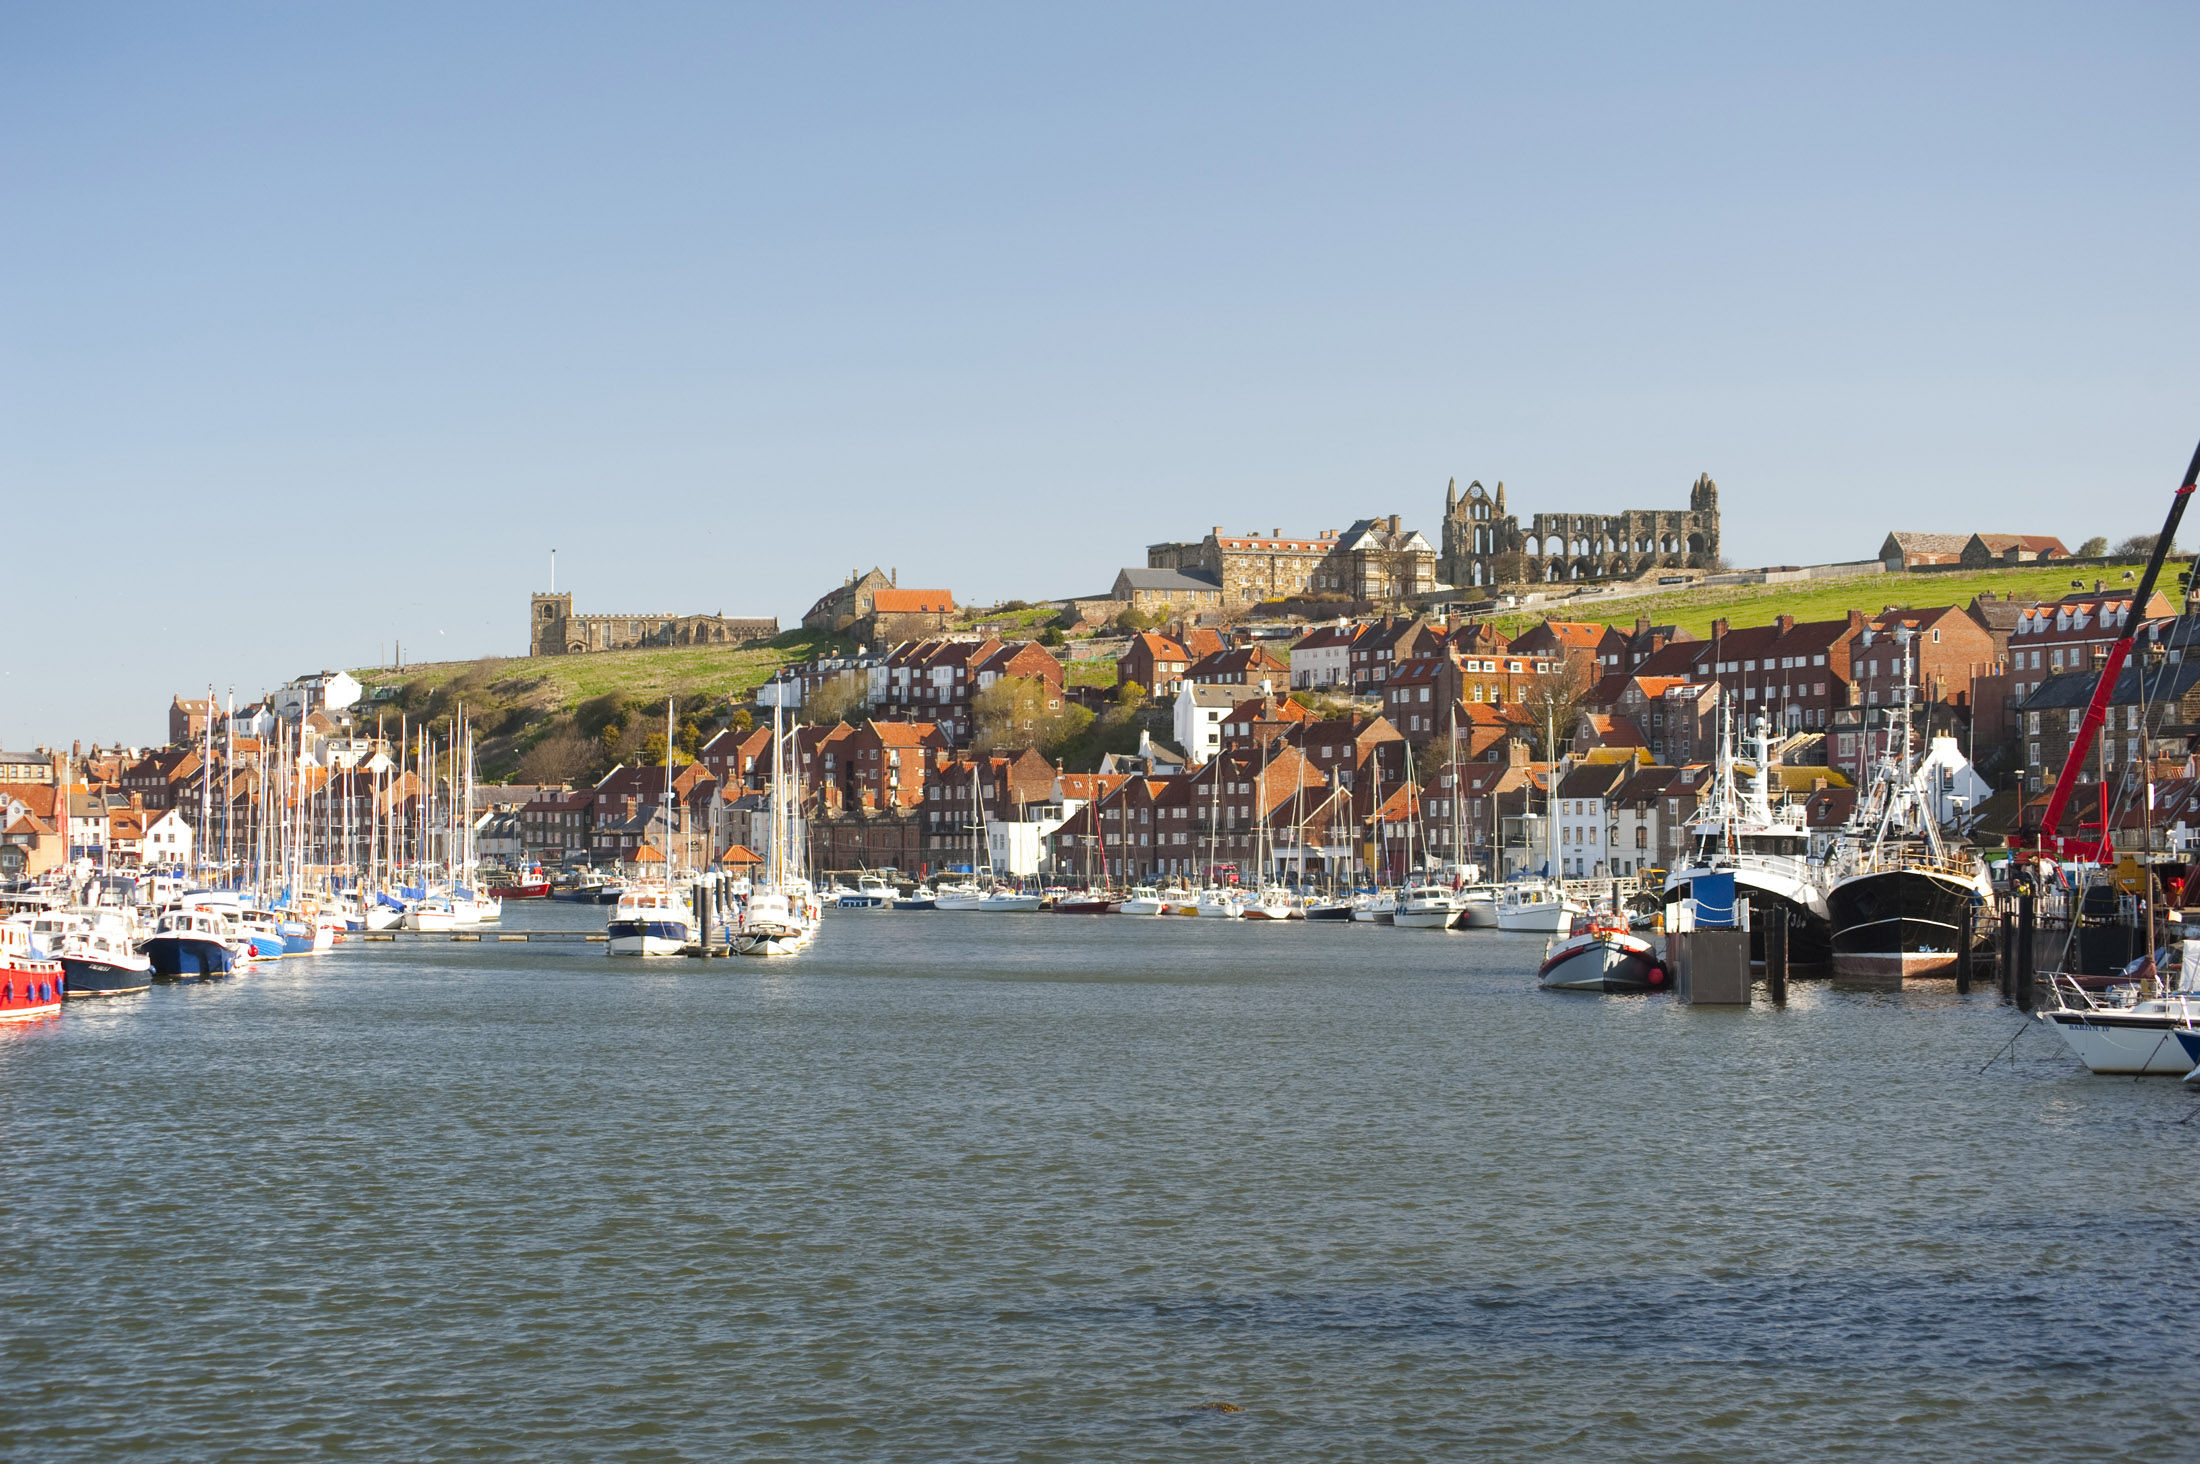 the river esk flowing through the coastal town of whitby with the landmark abbey standing on top of the hill